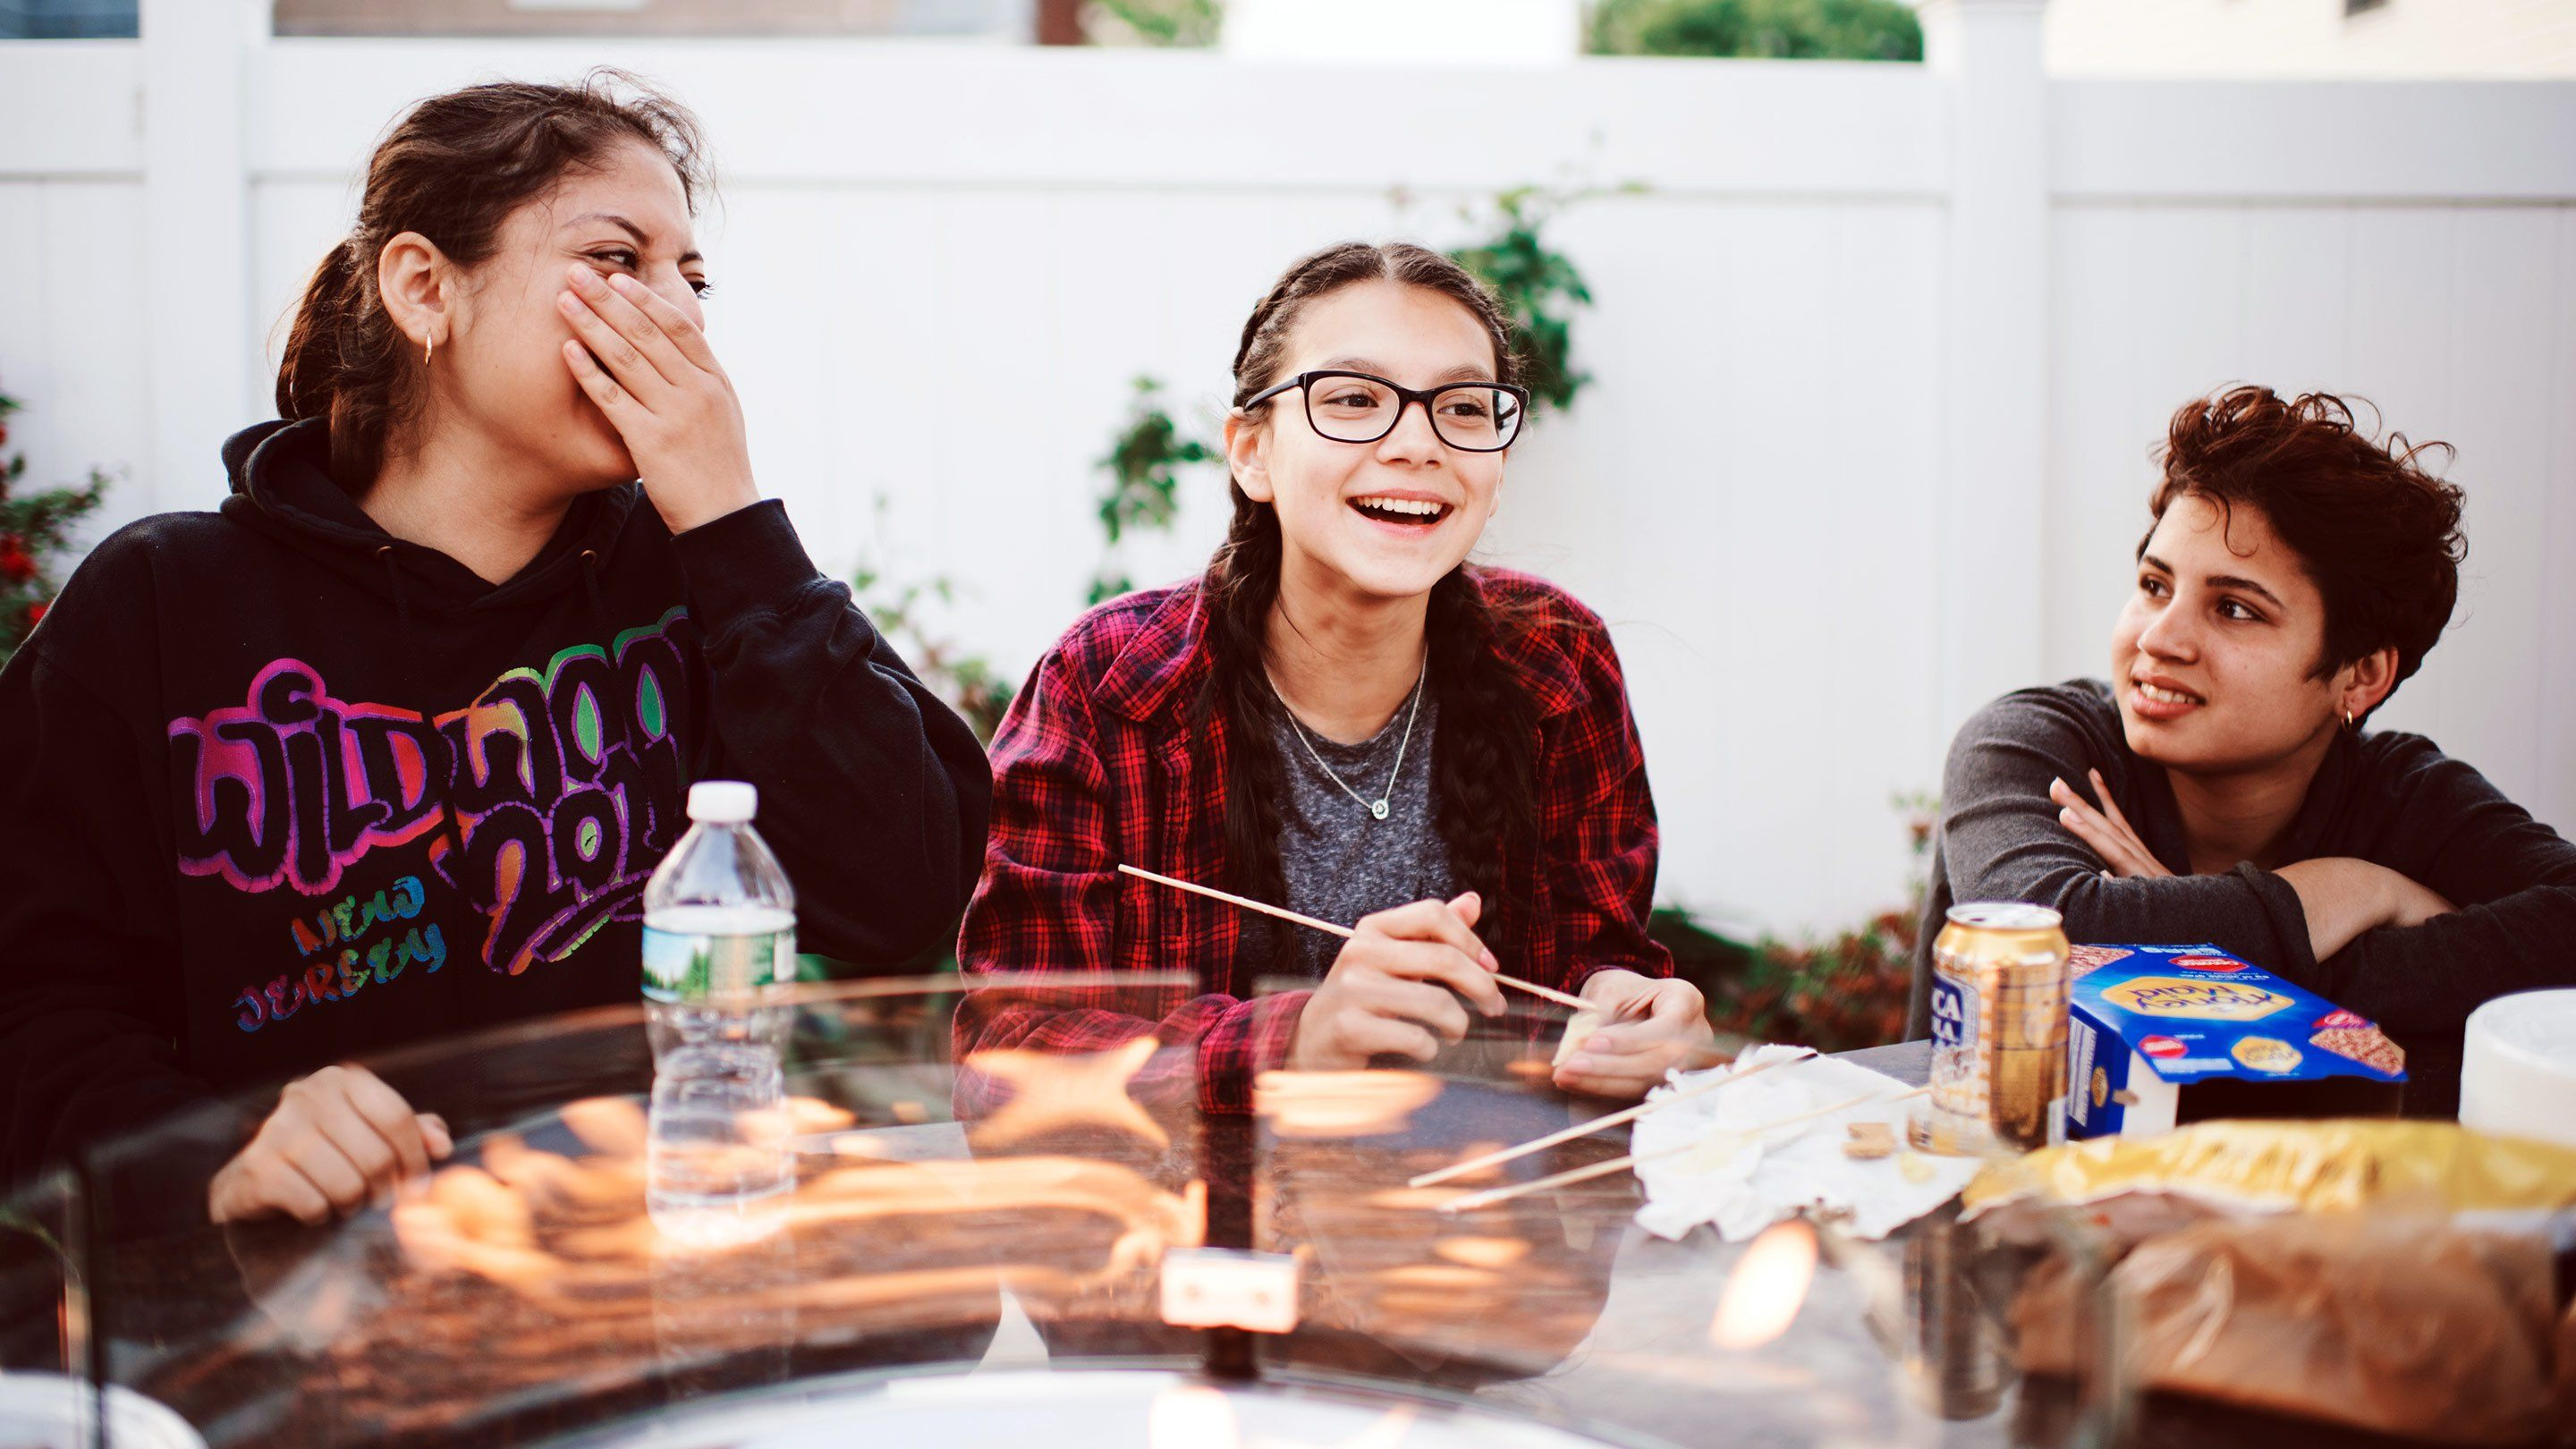 Two teenage girls are sitting outside at a glass table, eating lunch and laughing.